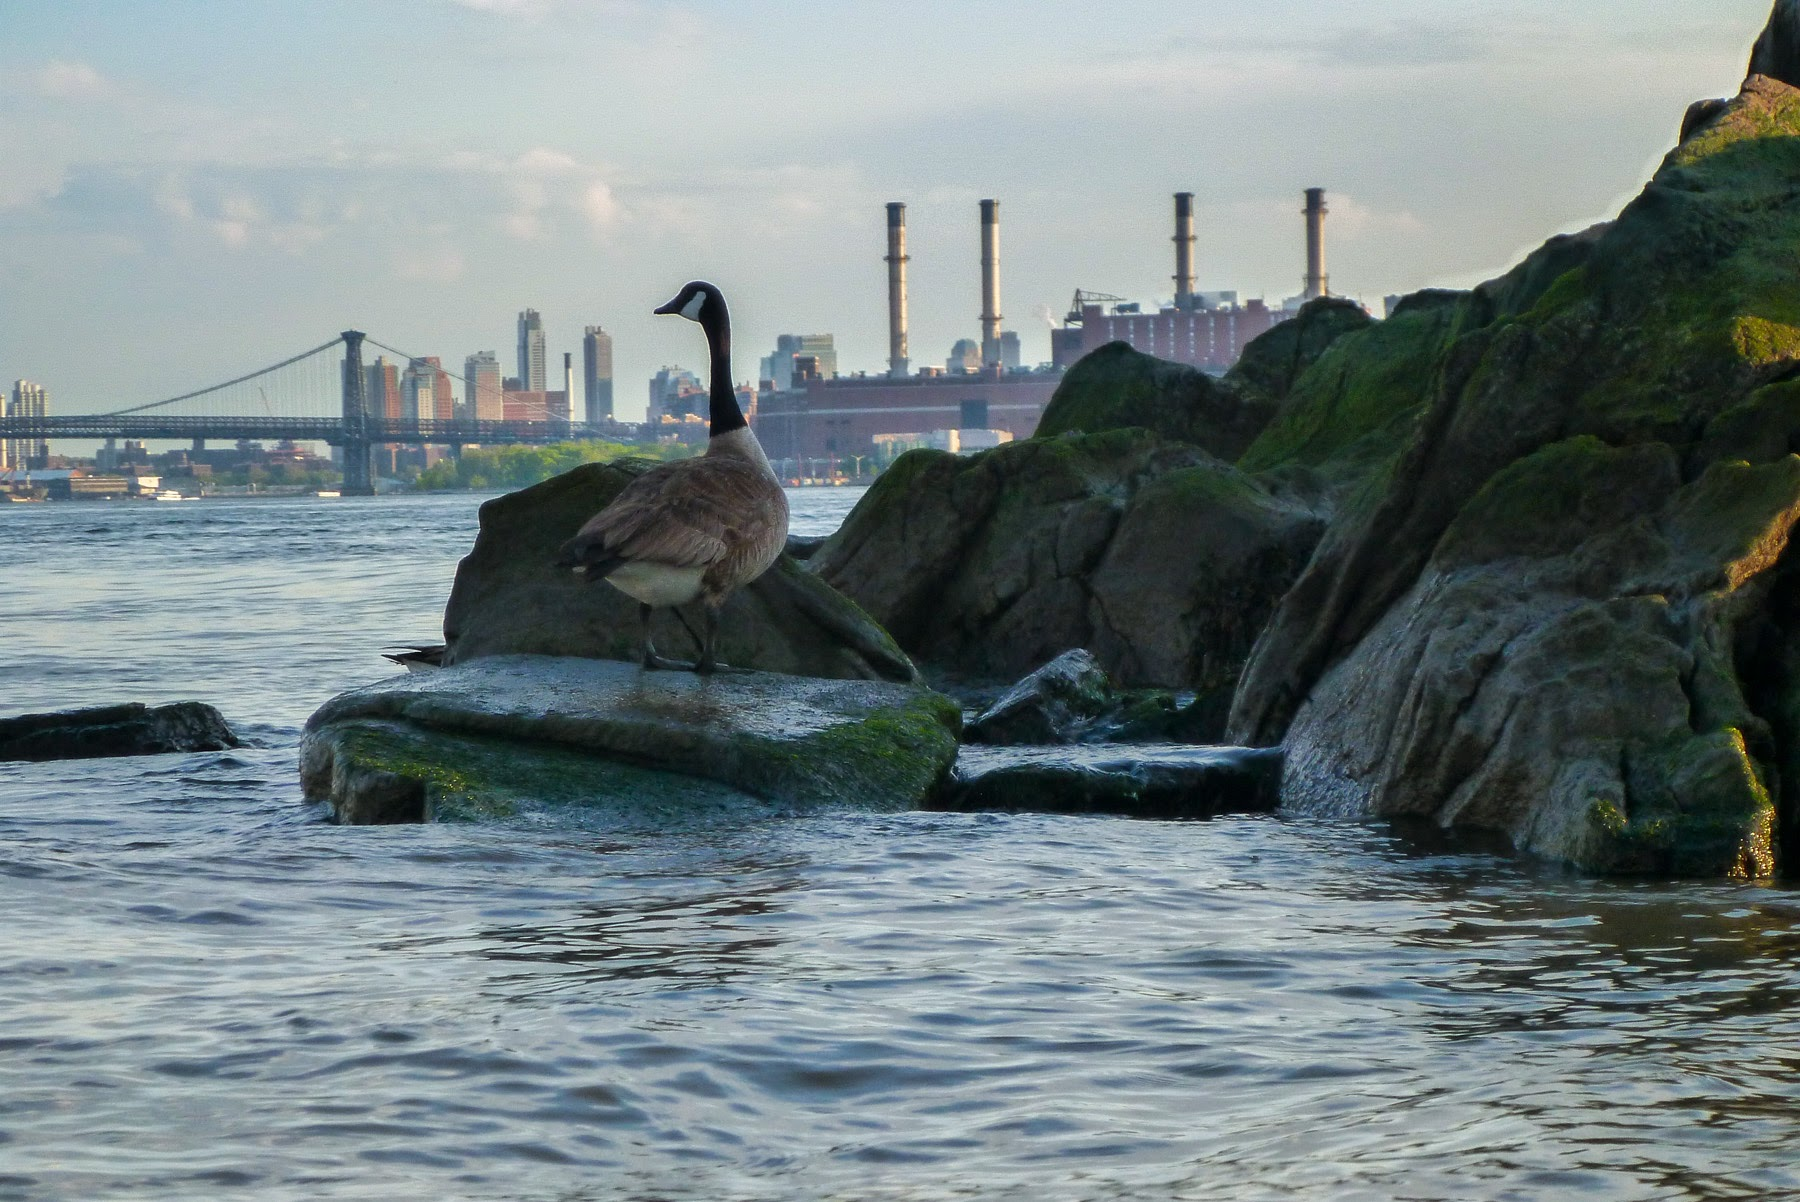 Canada goose, East River, May 2014. Photo by Klaus S.